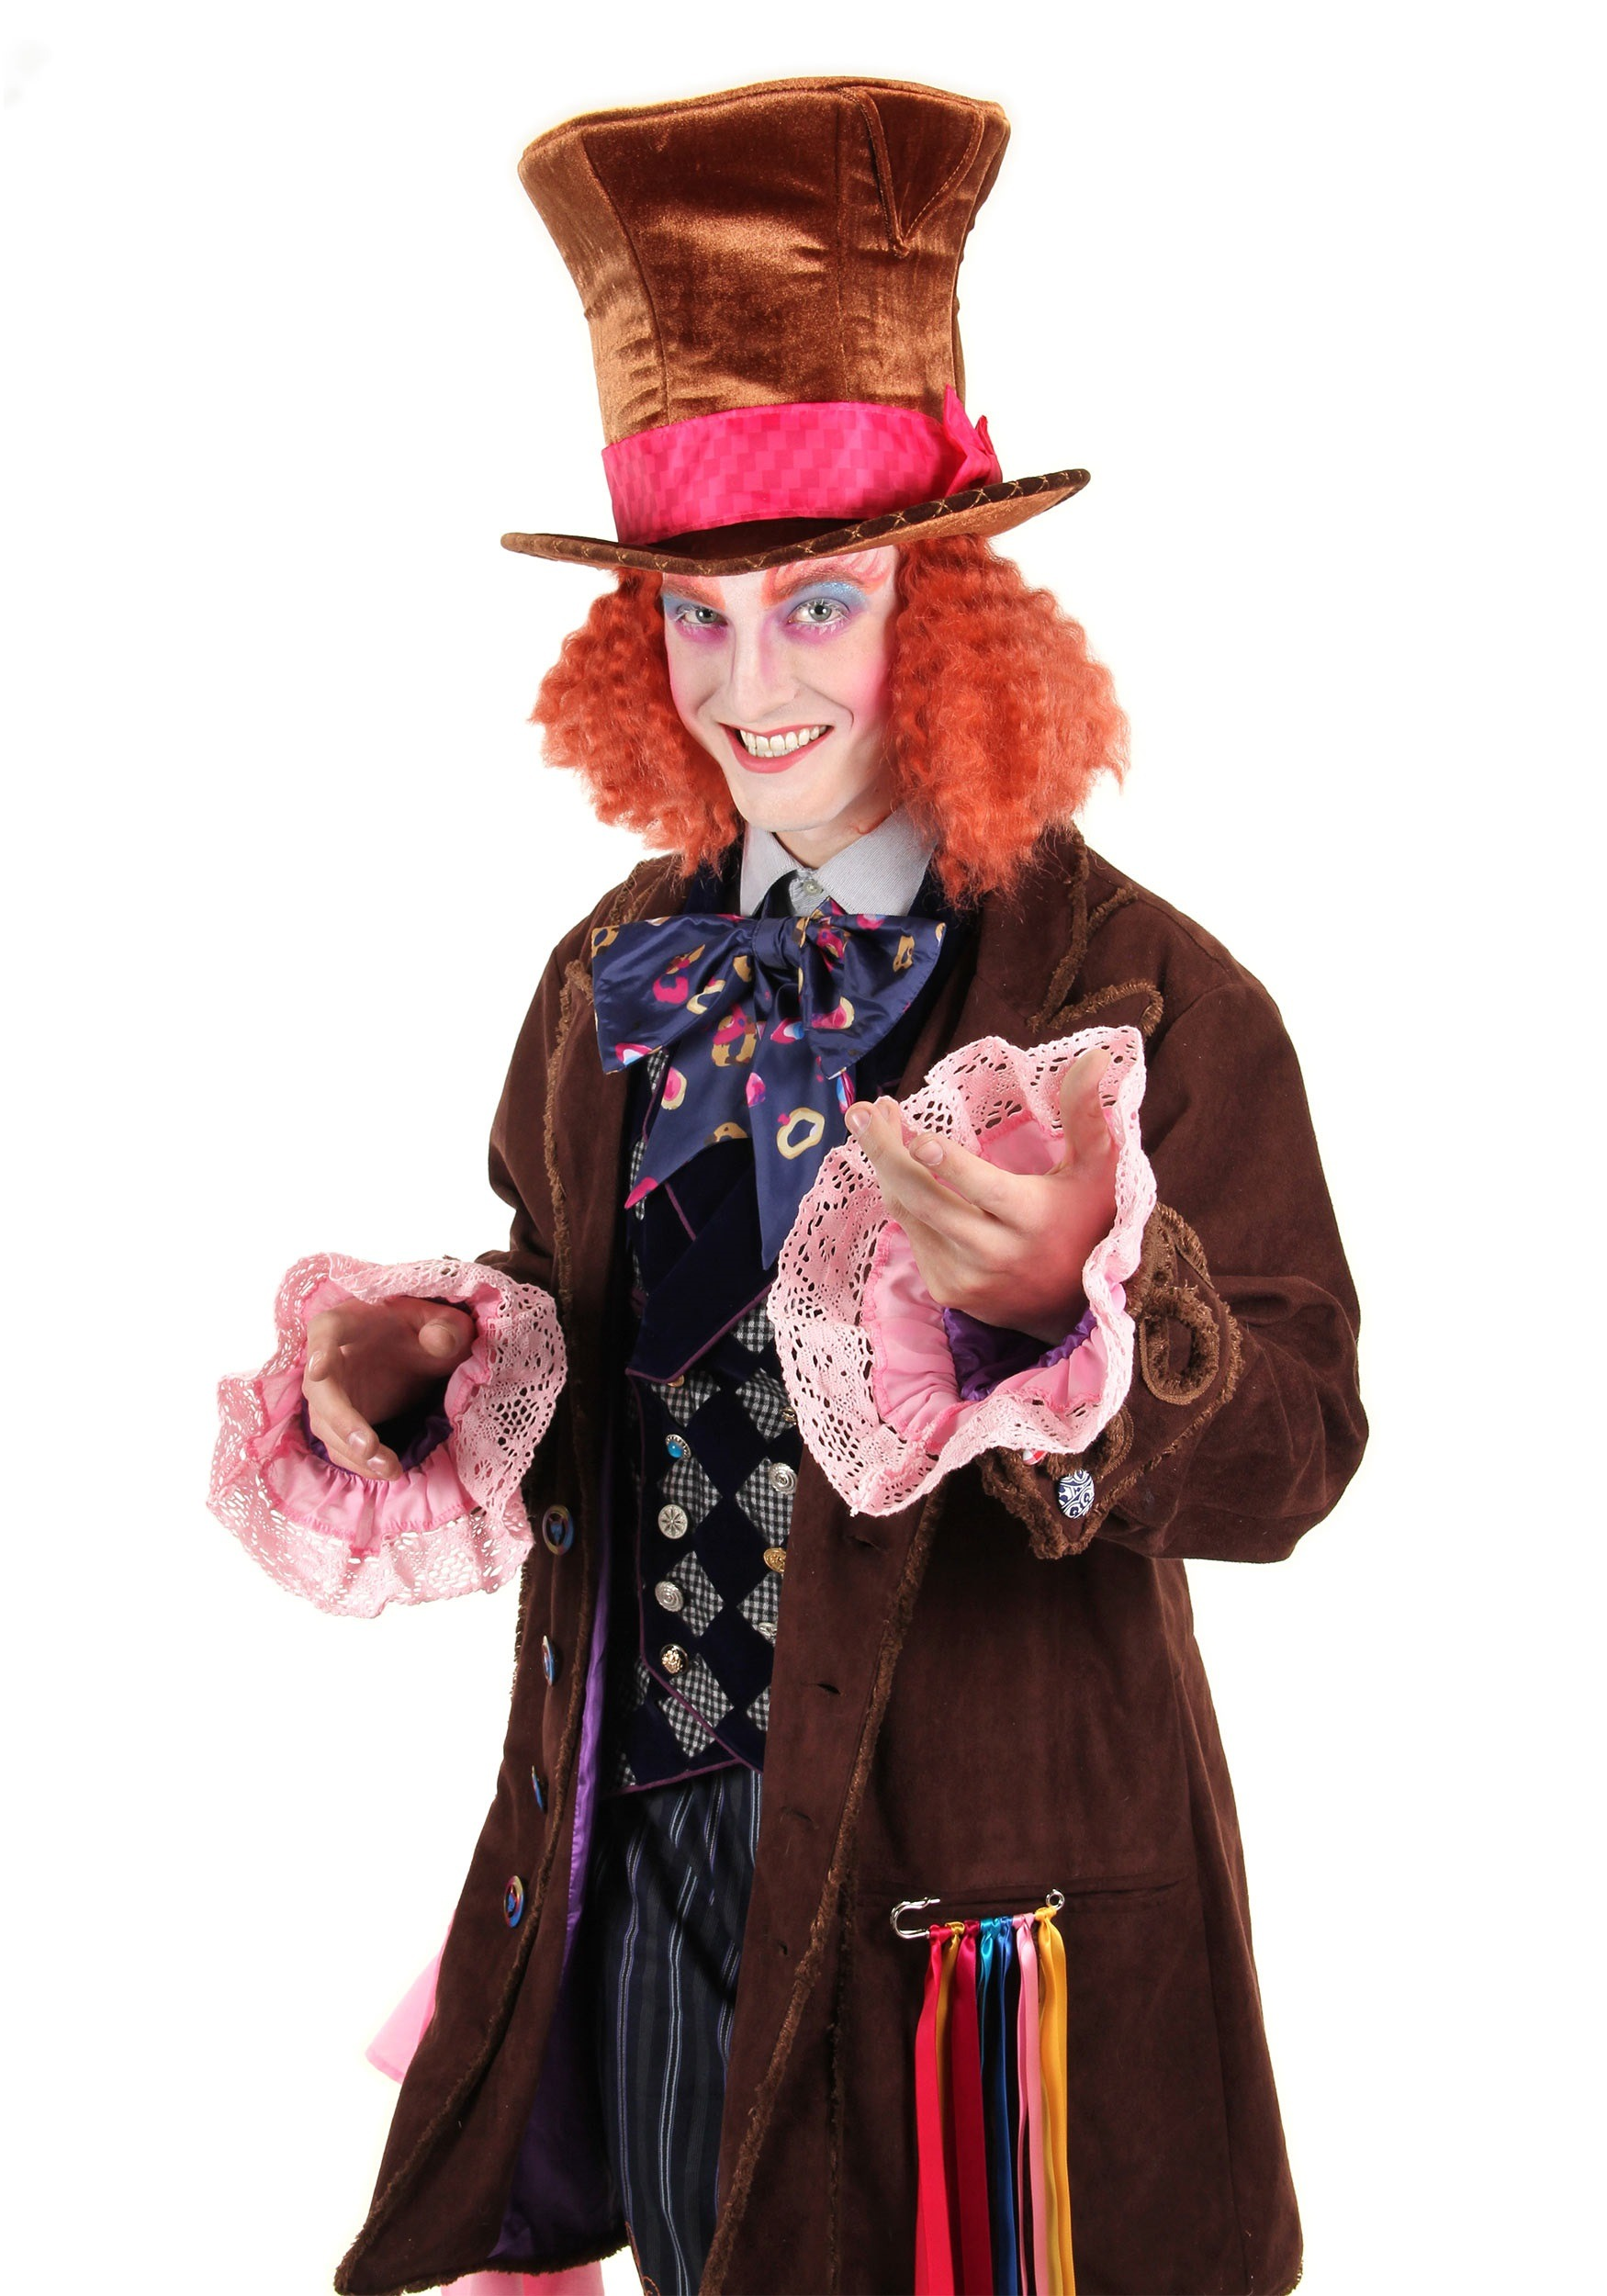 Mad hatter costumes for men